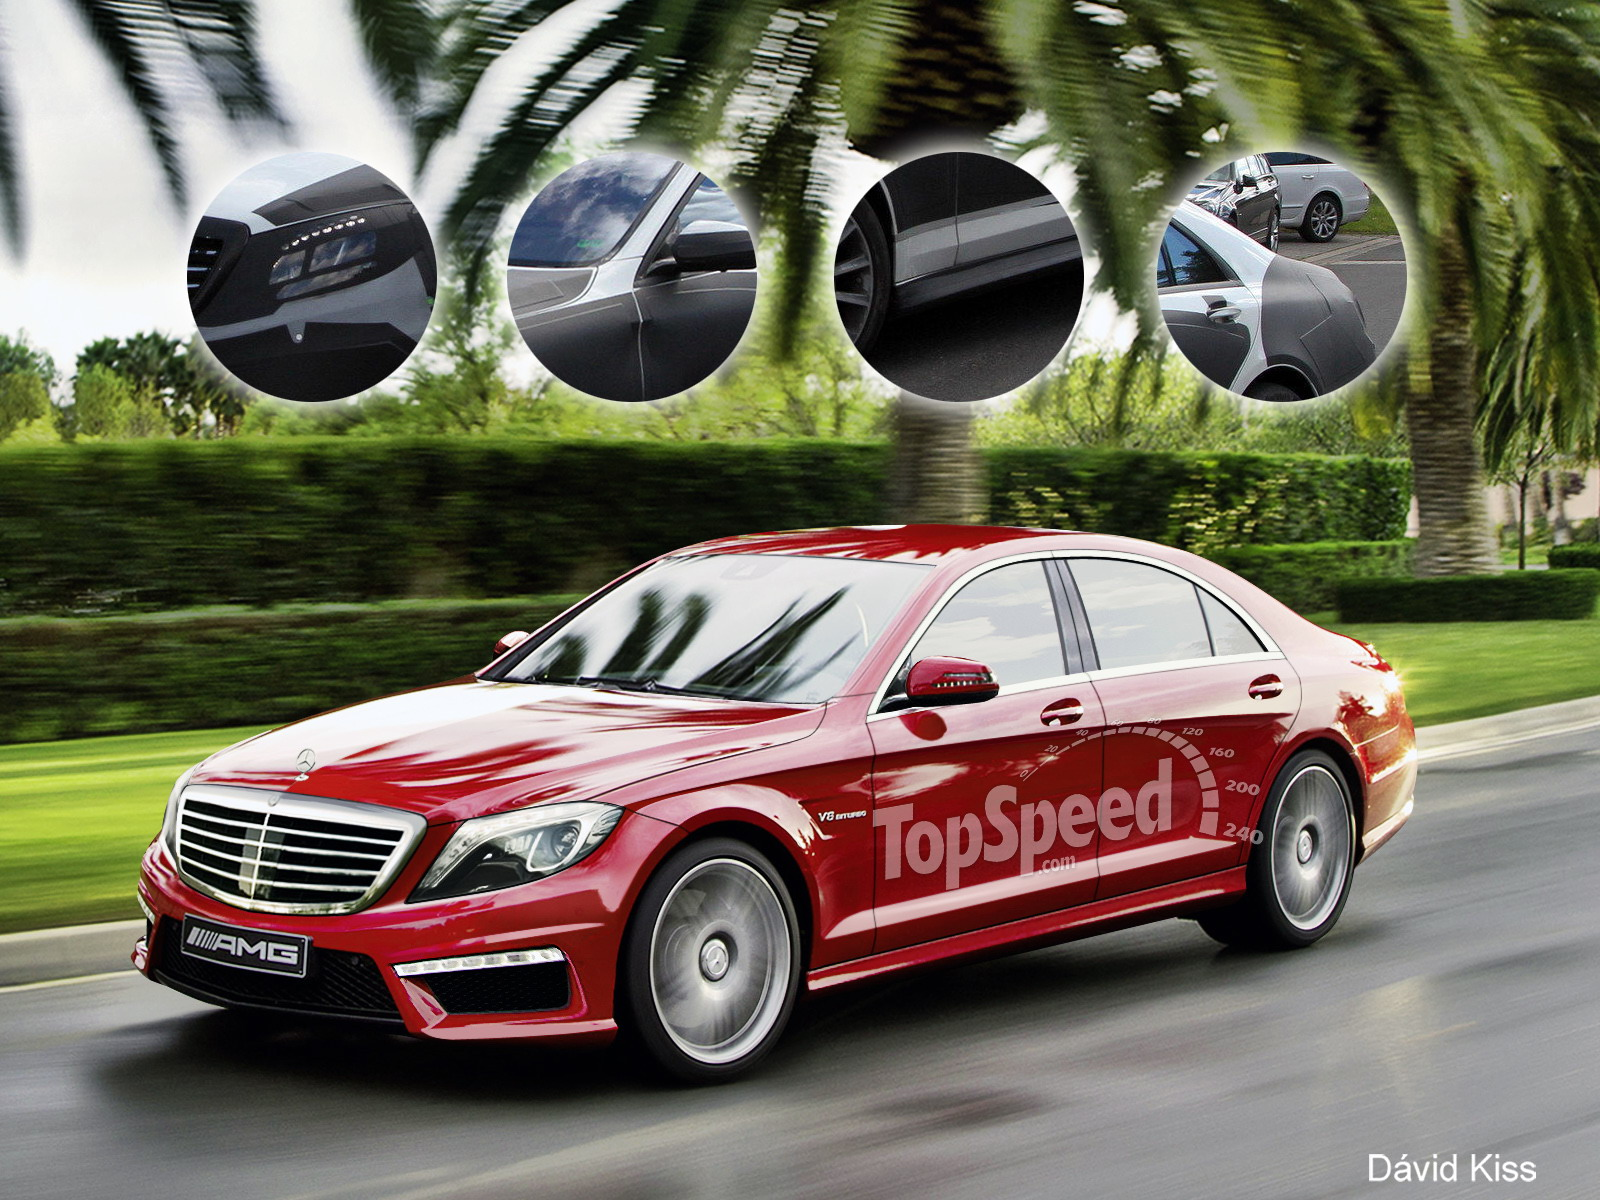 2014 mercedes benz s63 amg 4matic review top speed for 2014 mercedes benz s class s63 amg 4matic